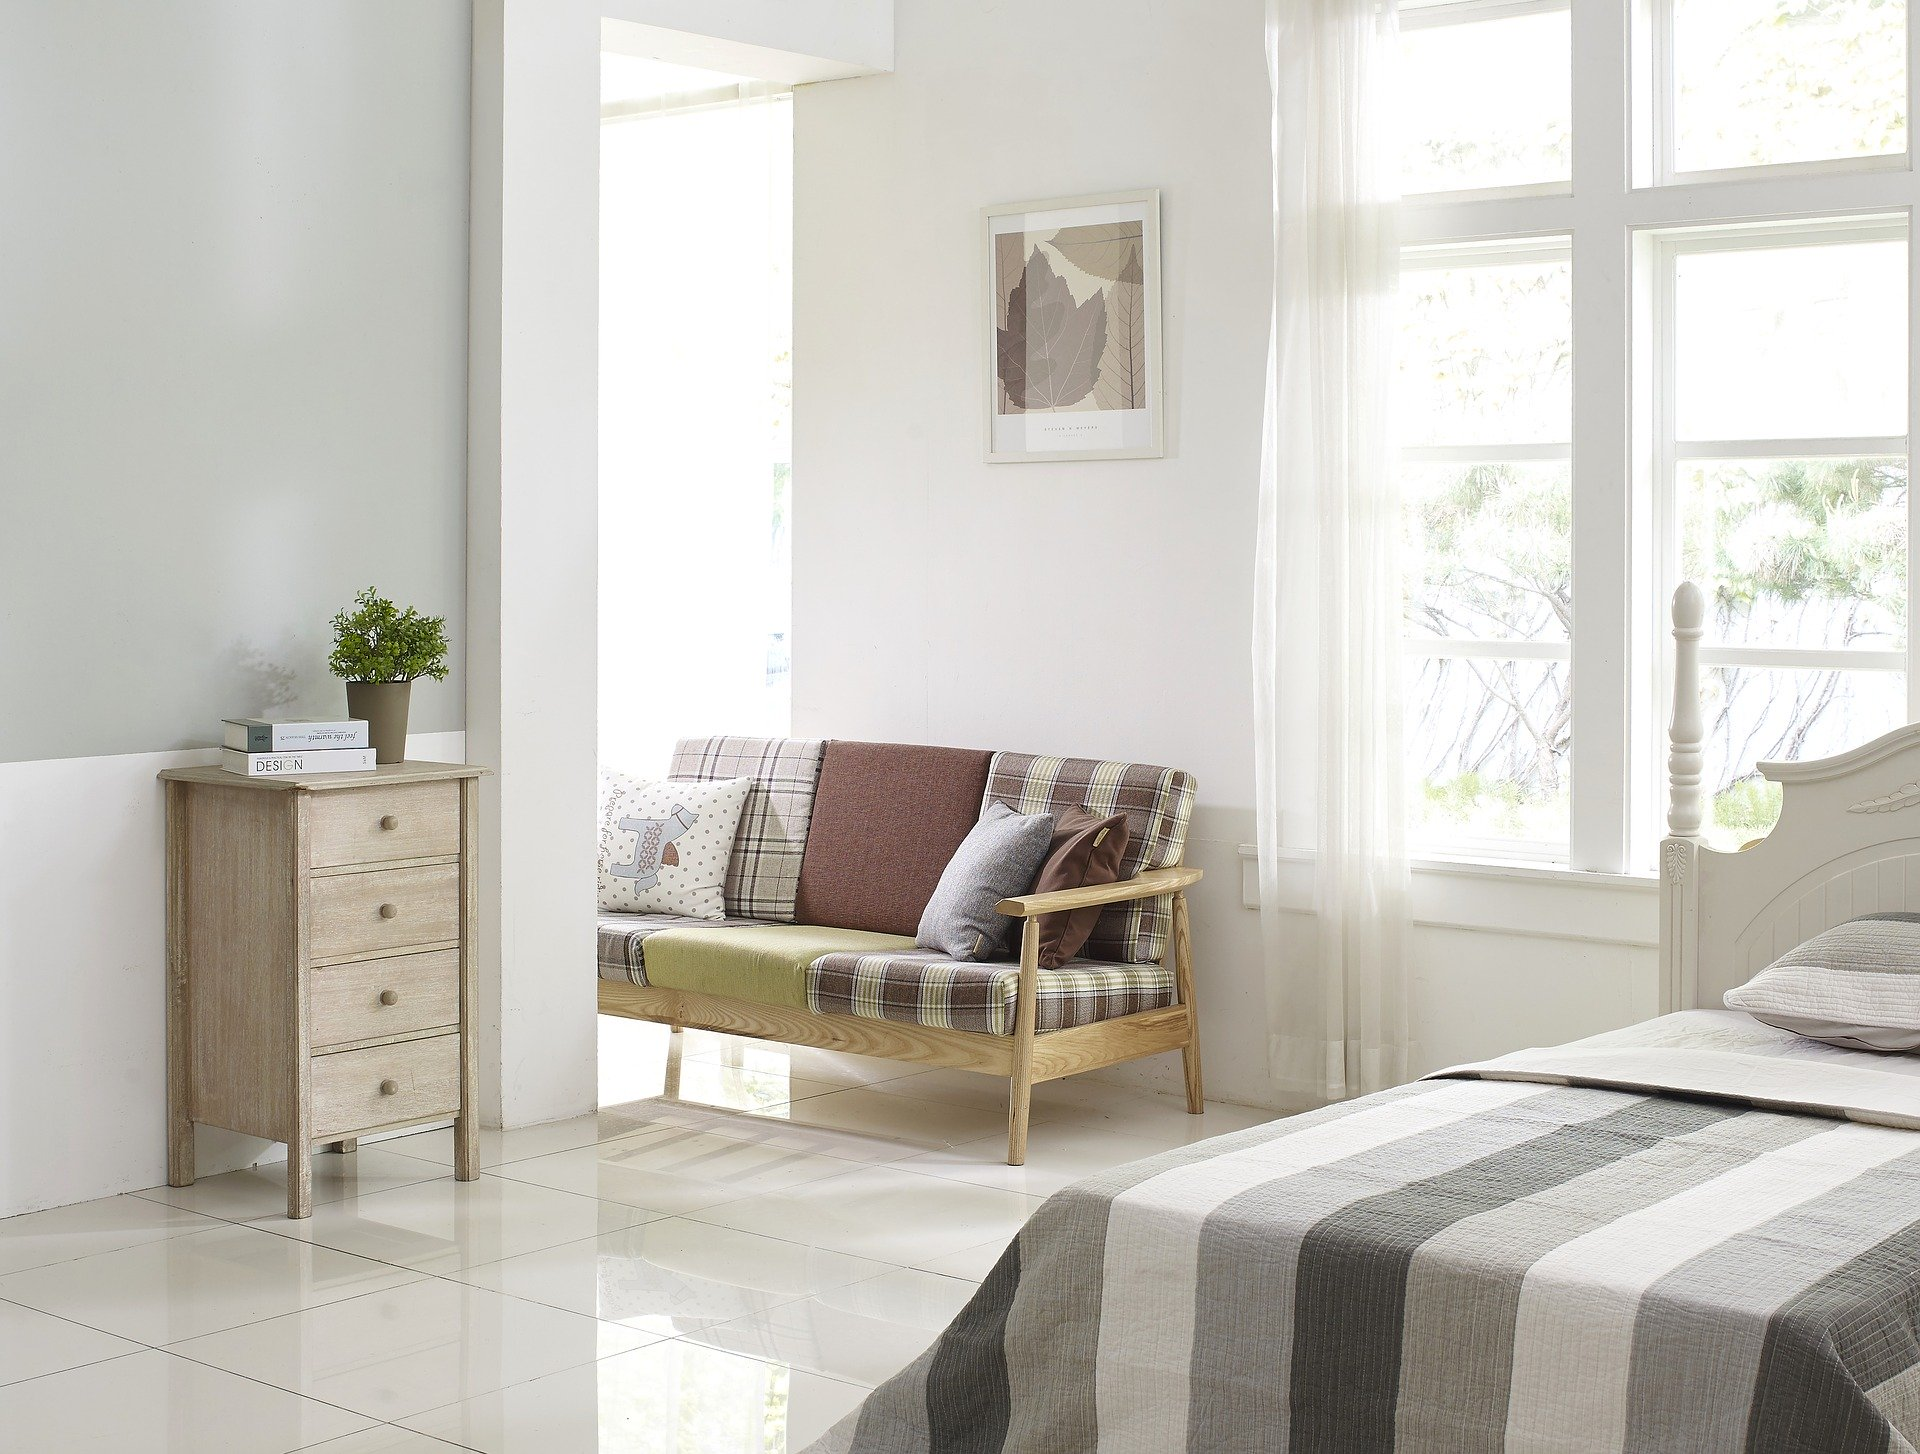 bedroom-with-a-bench